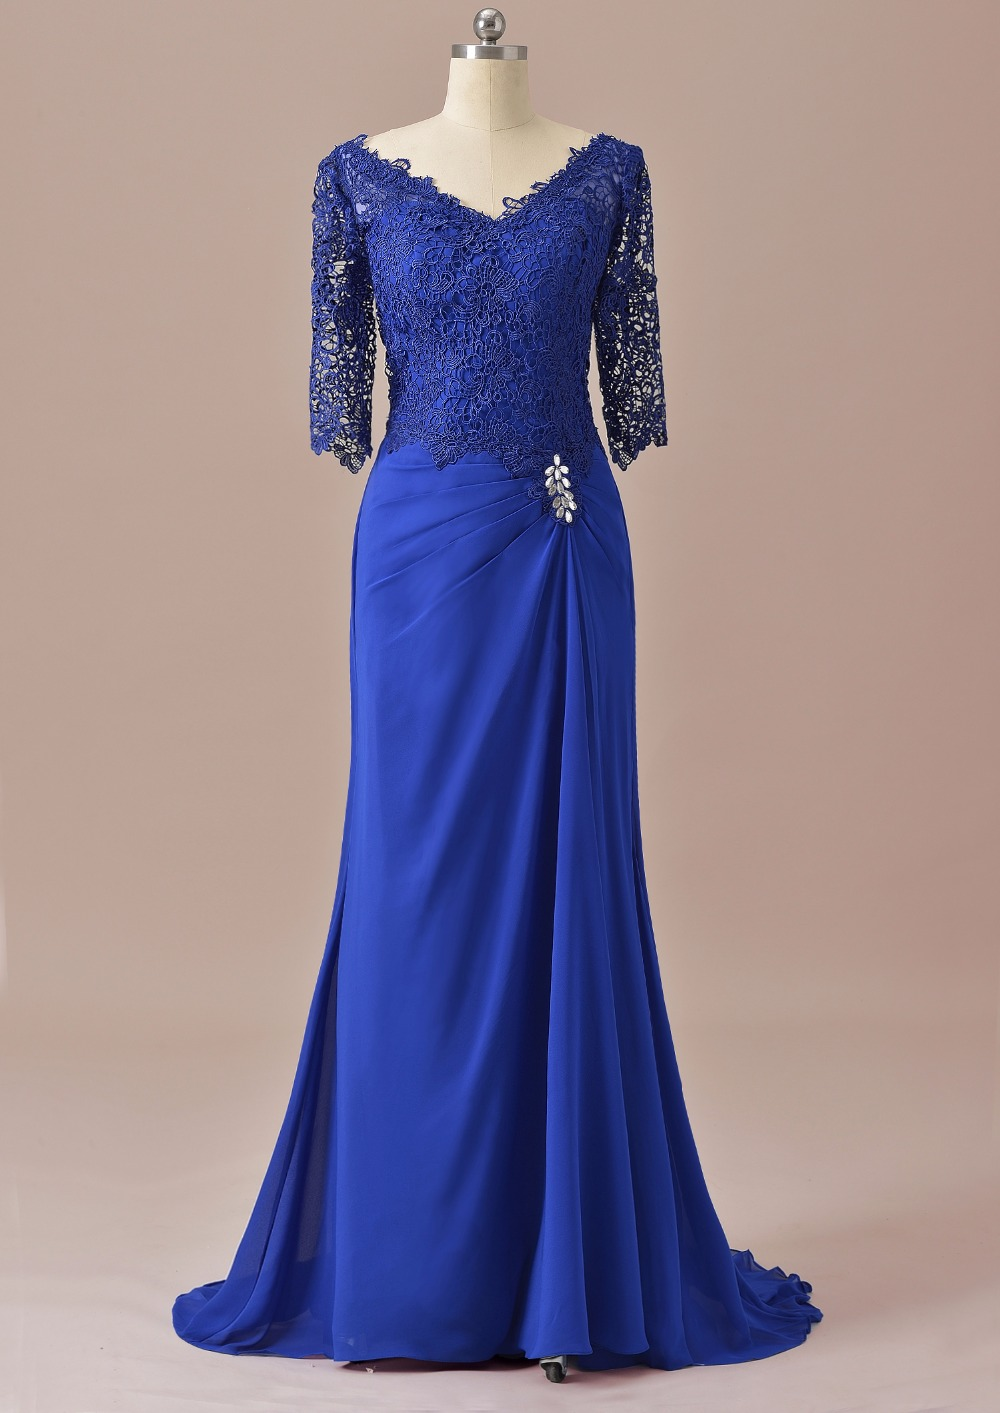 Mermaid Half Sleeves Lace Mother Of The Bride Dress Royal Blue For Wedding Groom 2019 Long Formal Evening Dress SLD-M14